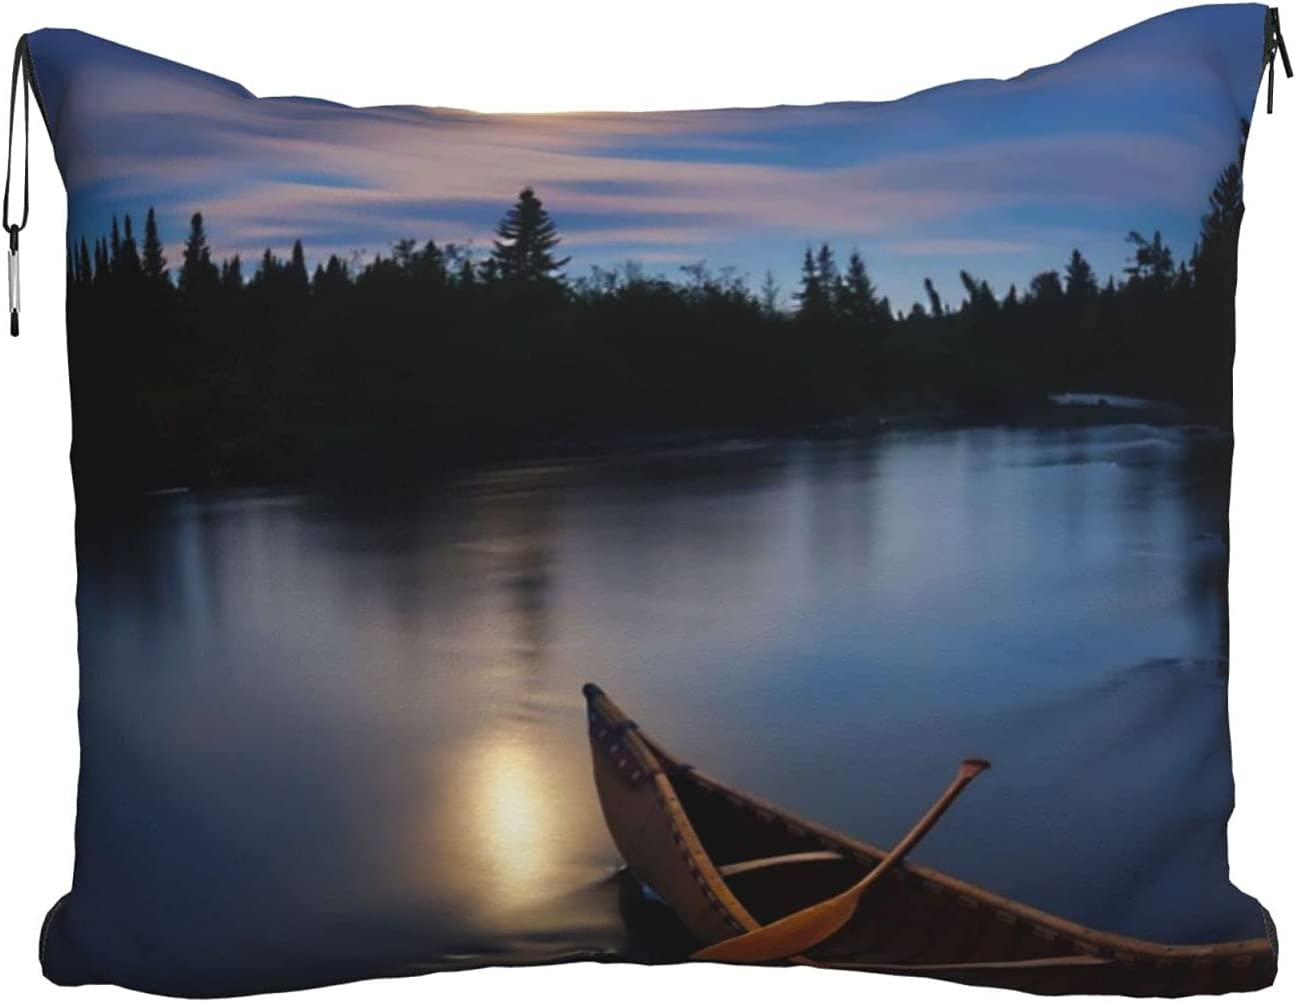 Moonlit Canoe Allagash River Printed Soft Travel Shipping included Blanket Japan Maker New Pillow